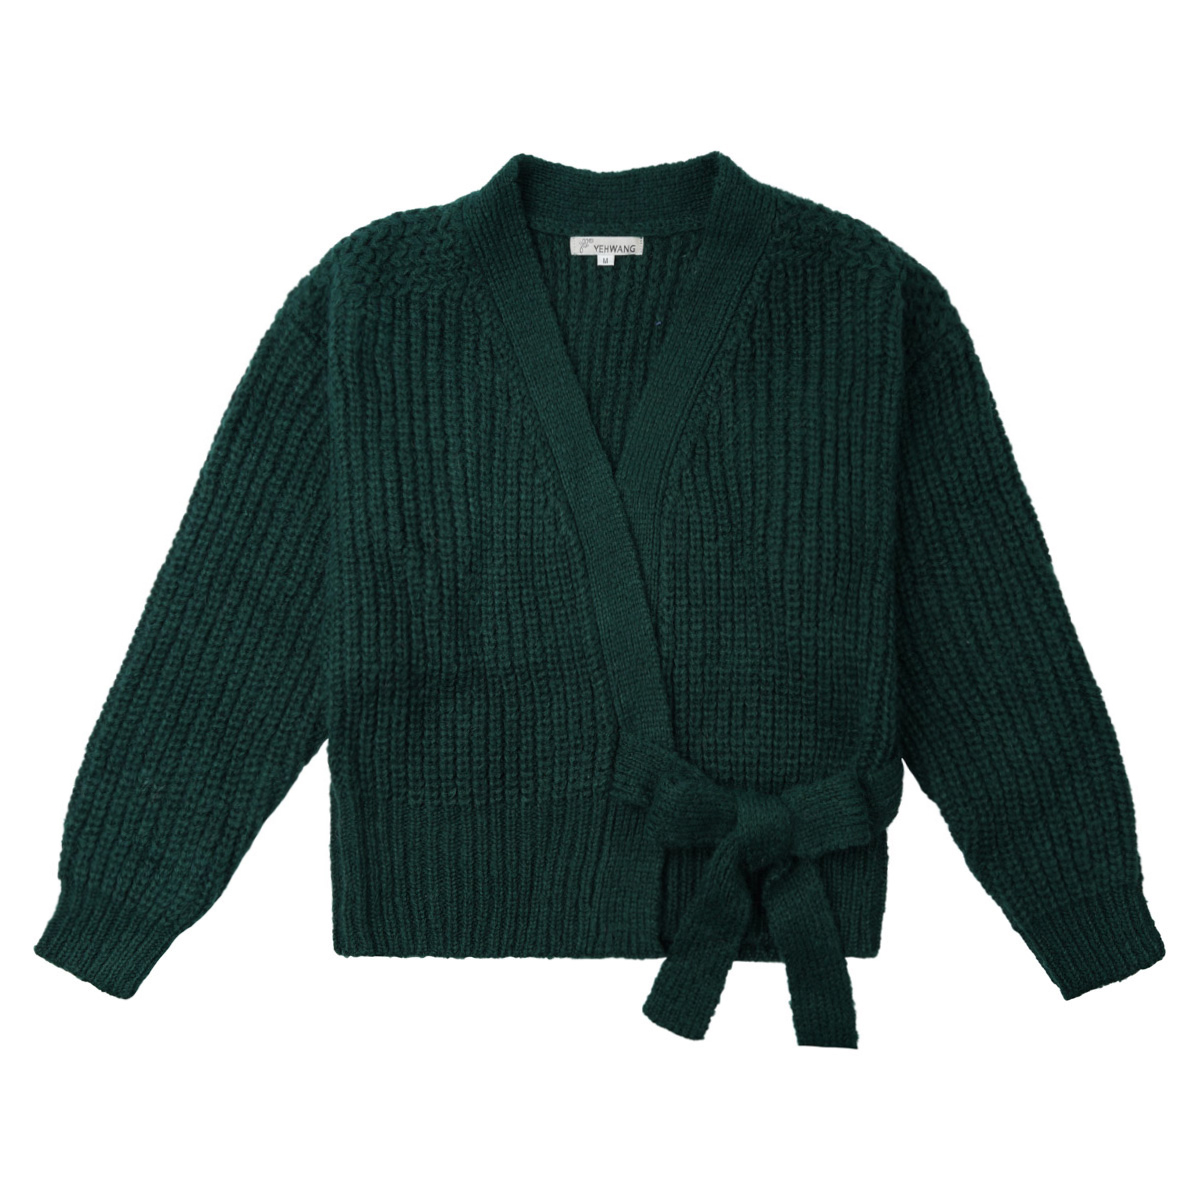 Cardigan Wrapped